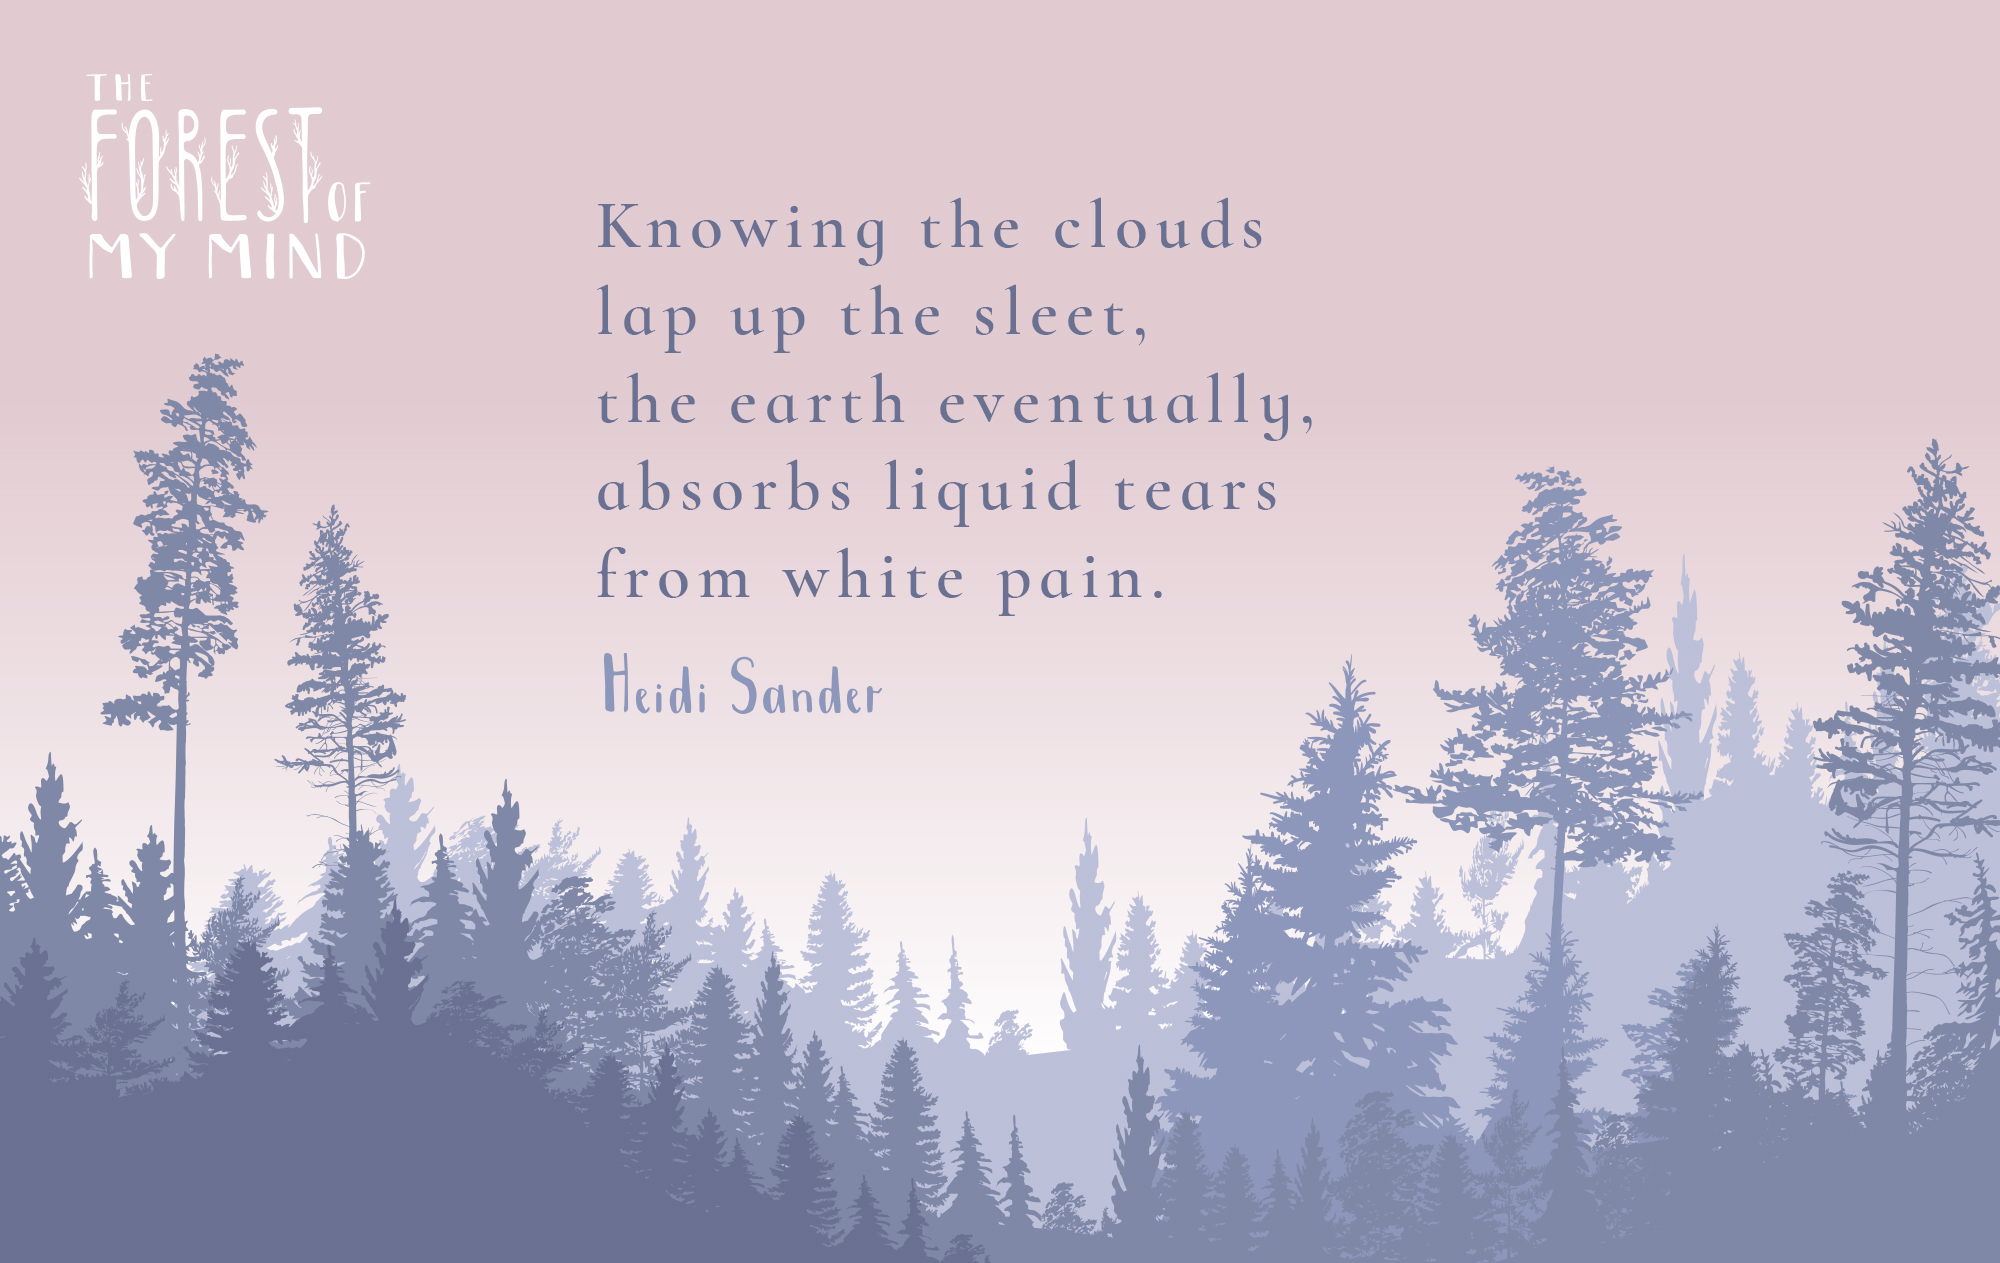 The Forest Of My Mind Poem Excerpt from Snow and Sky by Heidi Sander